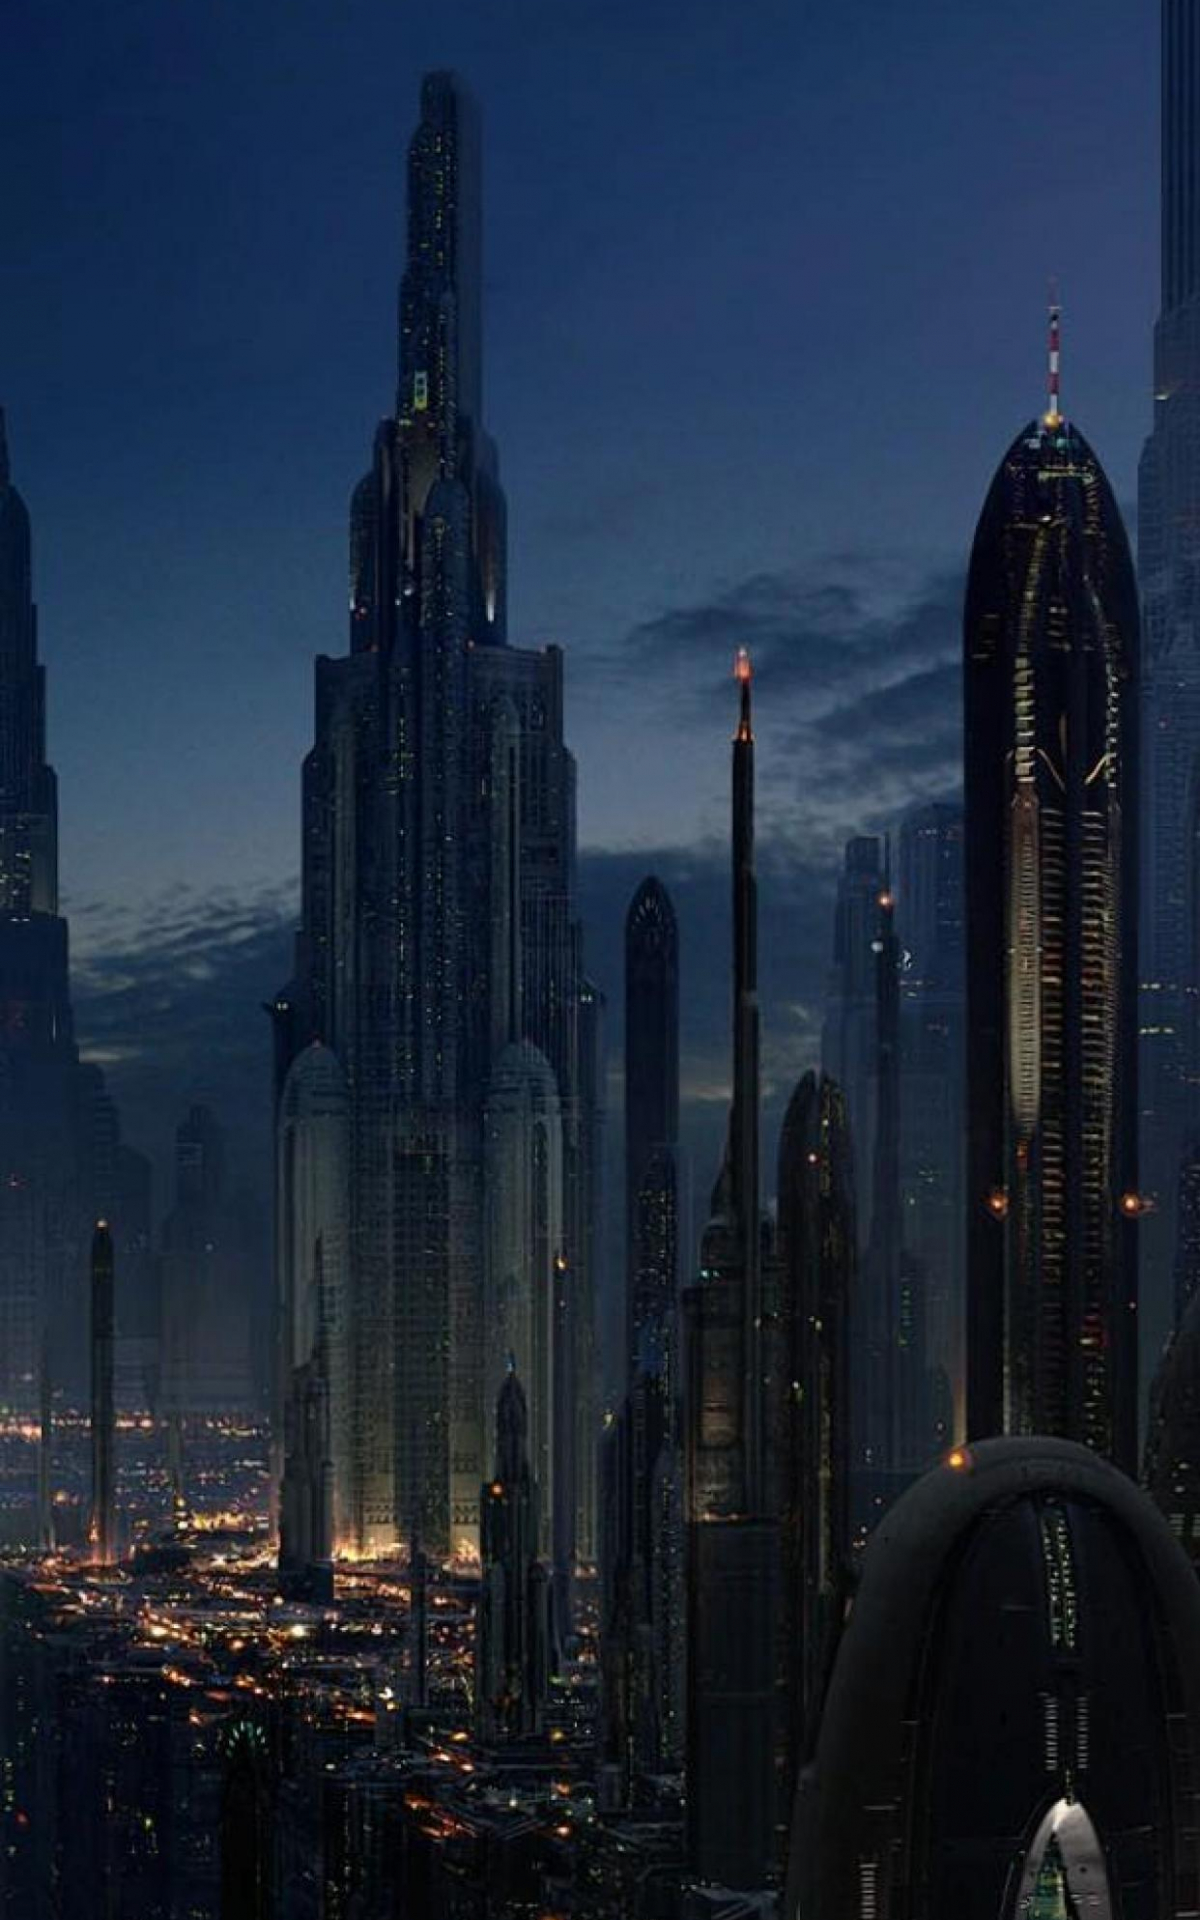 Free Download Star Movies Coruscant Star Wars Wars Coruscant Hd 1242x2208 For Your Desktop Mobile Tablet Explore 71 Coruscant Wallpaper Star Wars Landscape Wallpaper Star Wars 4k Wallpaper Computer